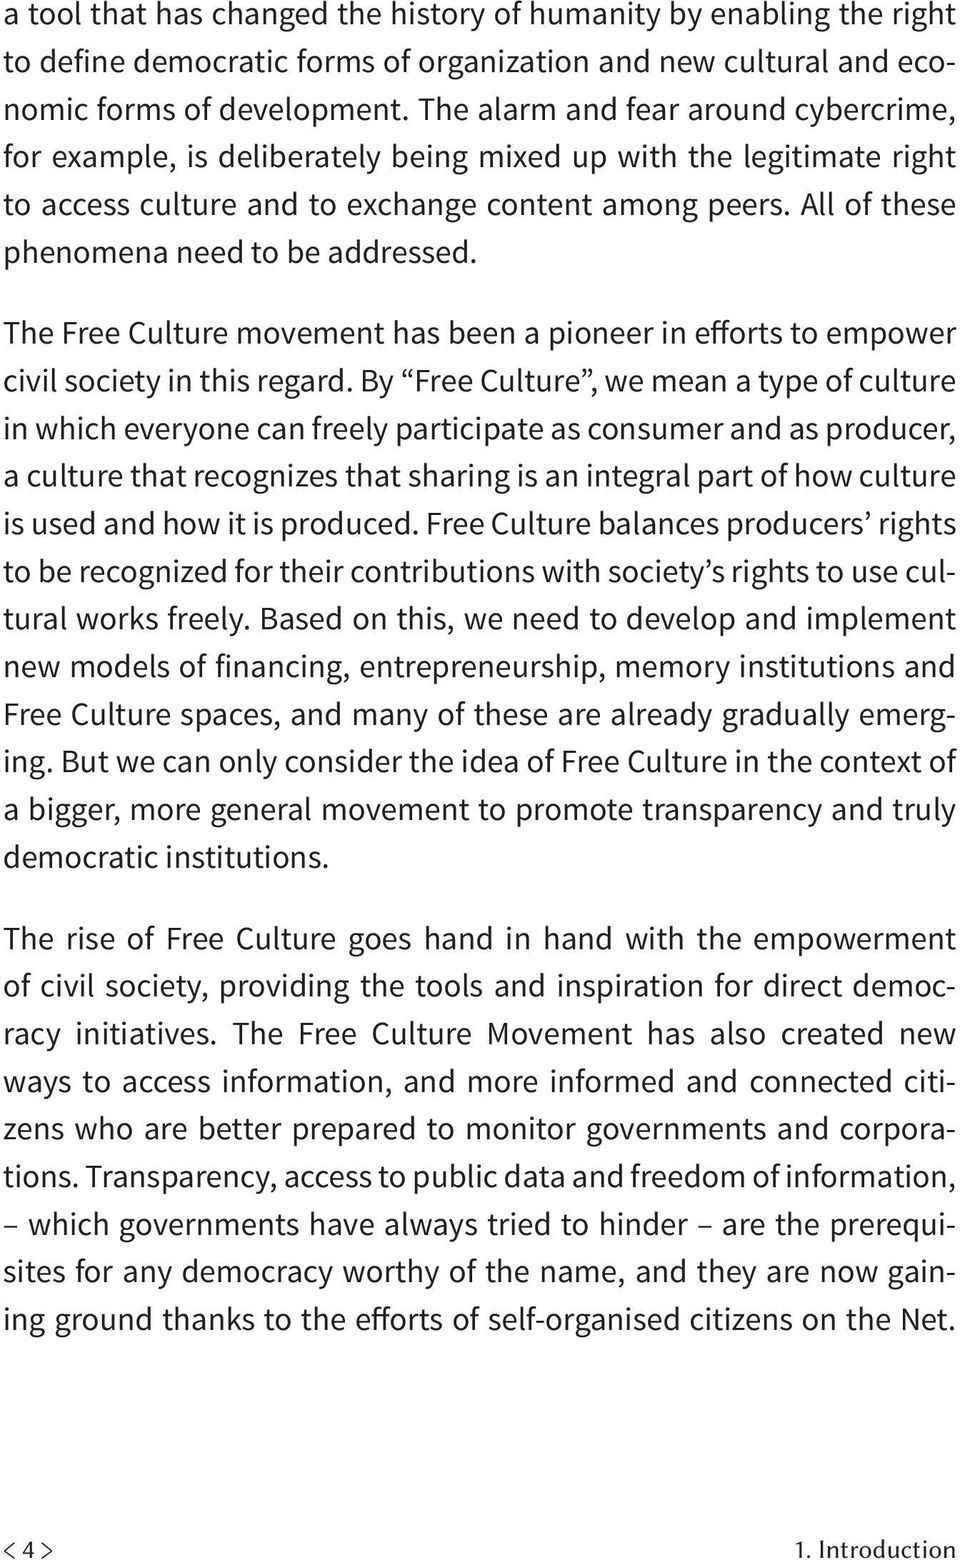 All of these phenomena need to be addressed. The Free Culture movement has been a pioneer in efforts to empower civil society in this regard.